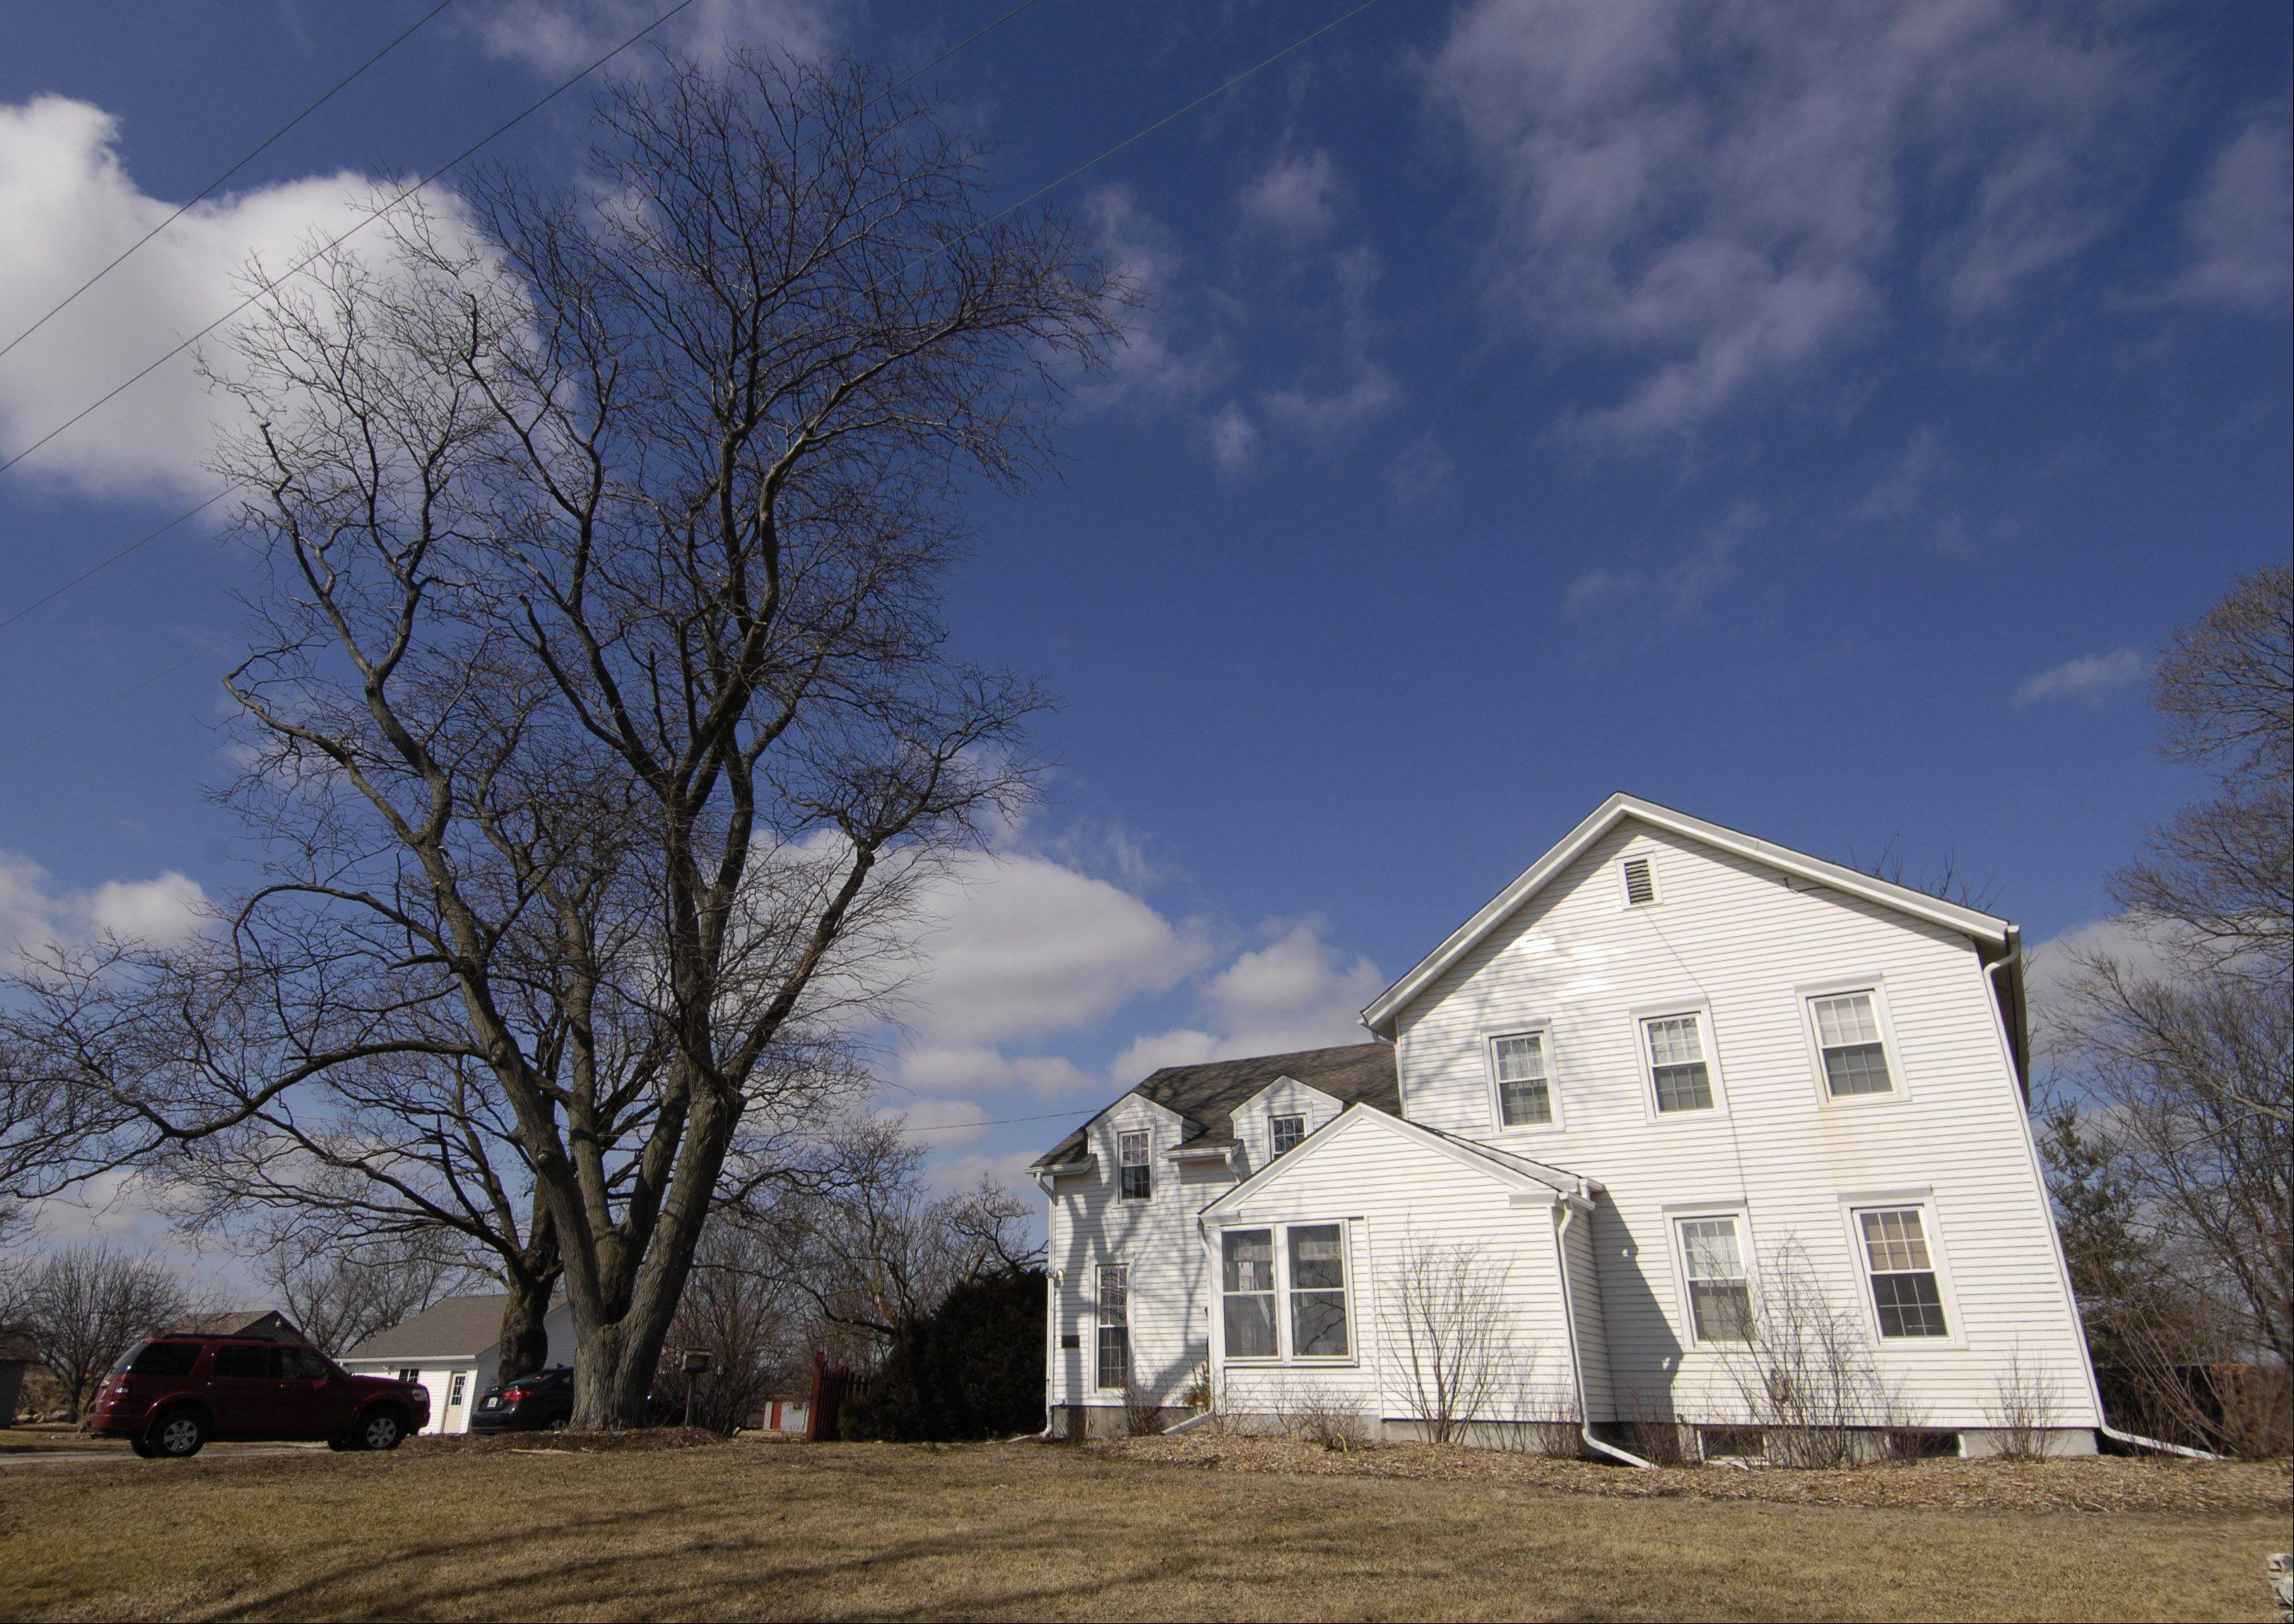 Critics, and even one West Chicago Park District commissioner, question why Executive Director Gary Major lives rent-free in this house owned by the district at Kress Creek Farm on the city's south side.$PHOTOCREDIT_ON$Mark Black/ mblack@dailyherald.com$PHOTOCREDIT_OFF$